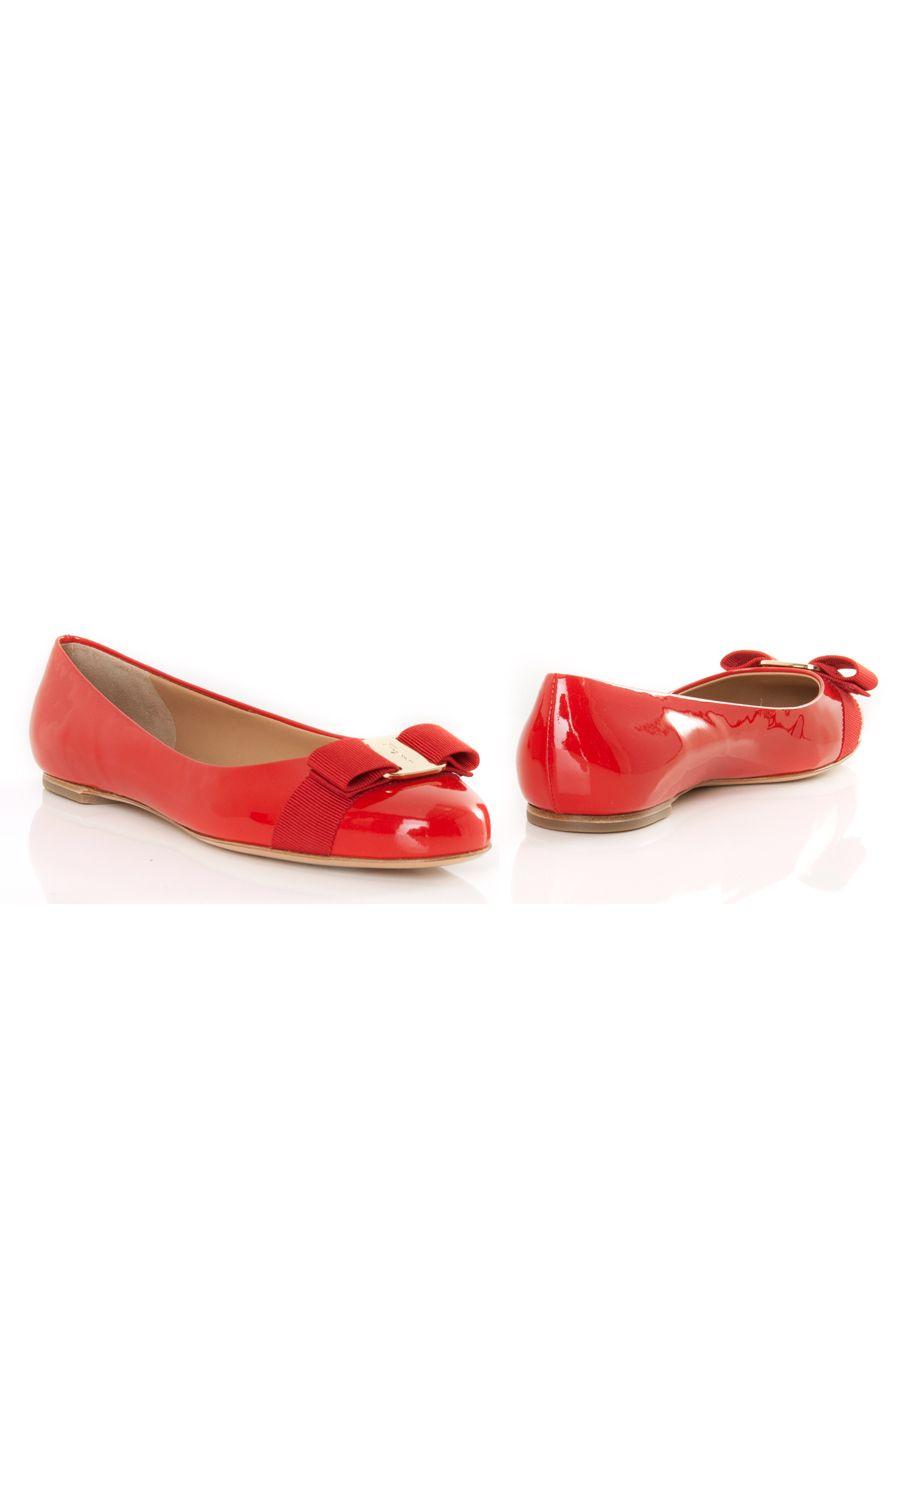 Salvatore Ferragamo Red Flats 10mm High Heel, Grosgraiin Strap And Bow, Leather Innersole And Lining, Leather Sole, Gold Coloured Metal Hardware